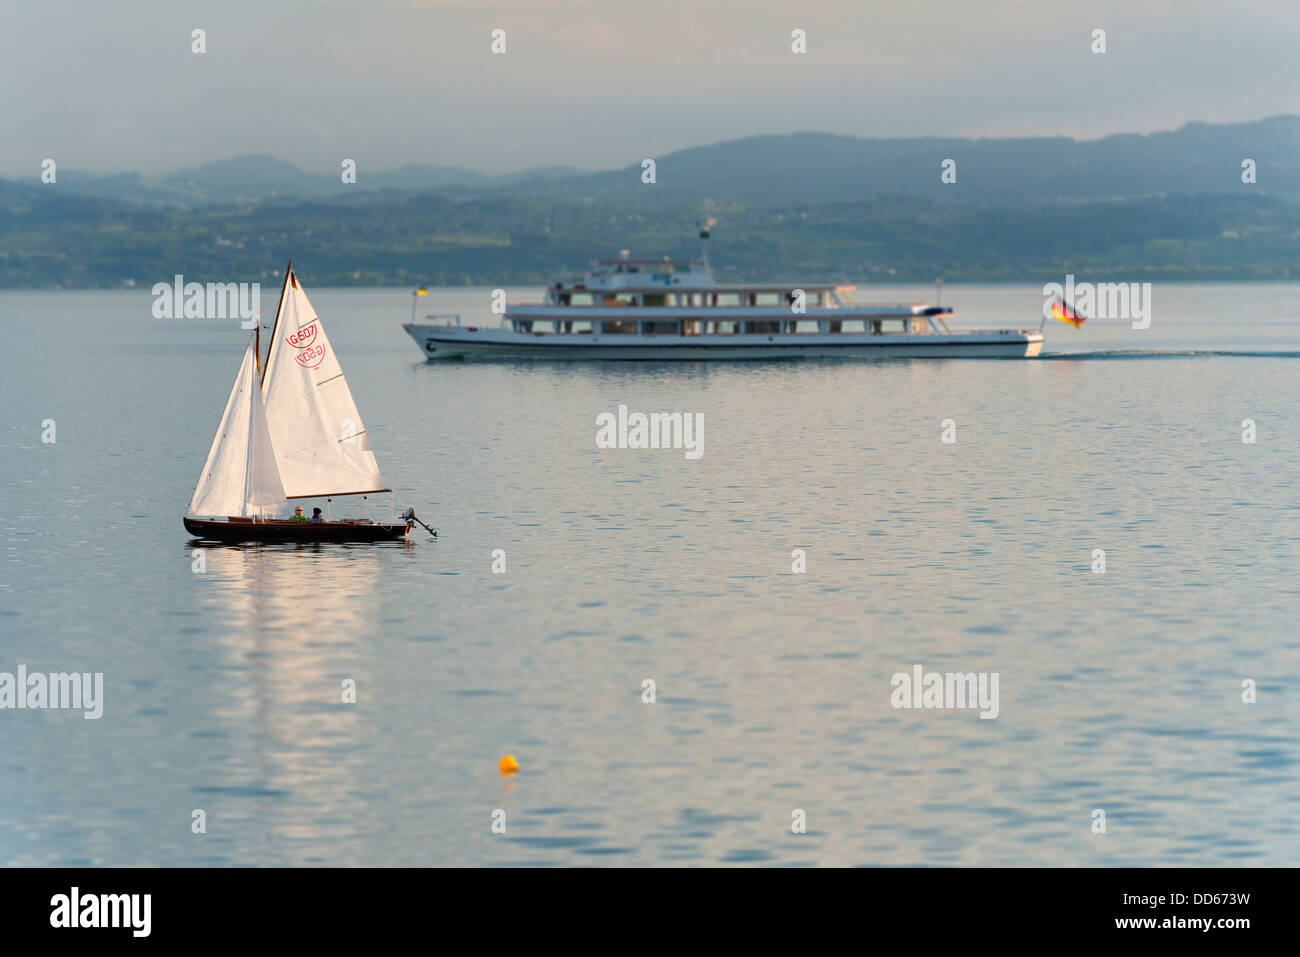 Germany, View of passenger ship passing sailing boat in lake constance - Stock Image